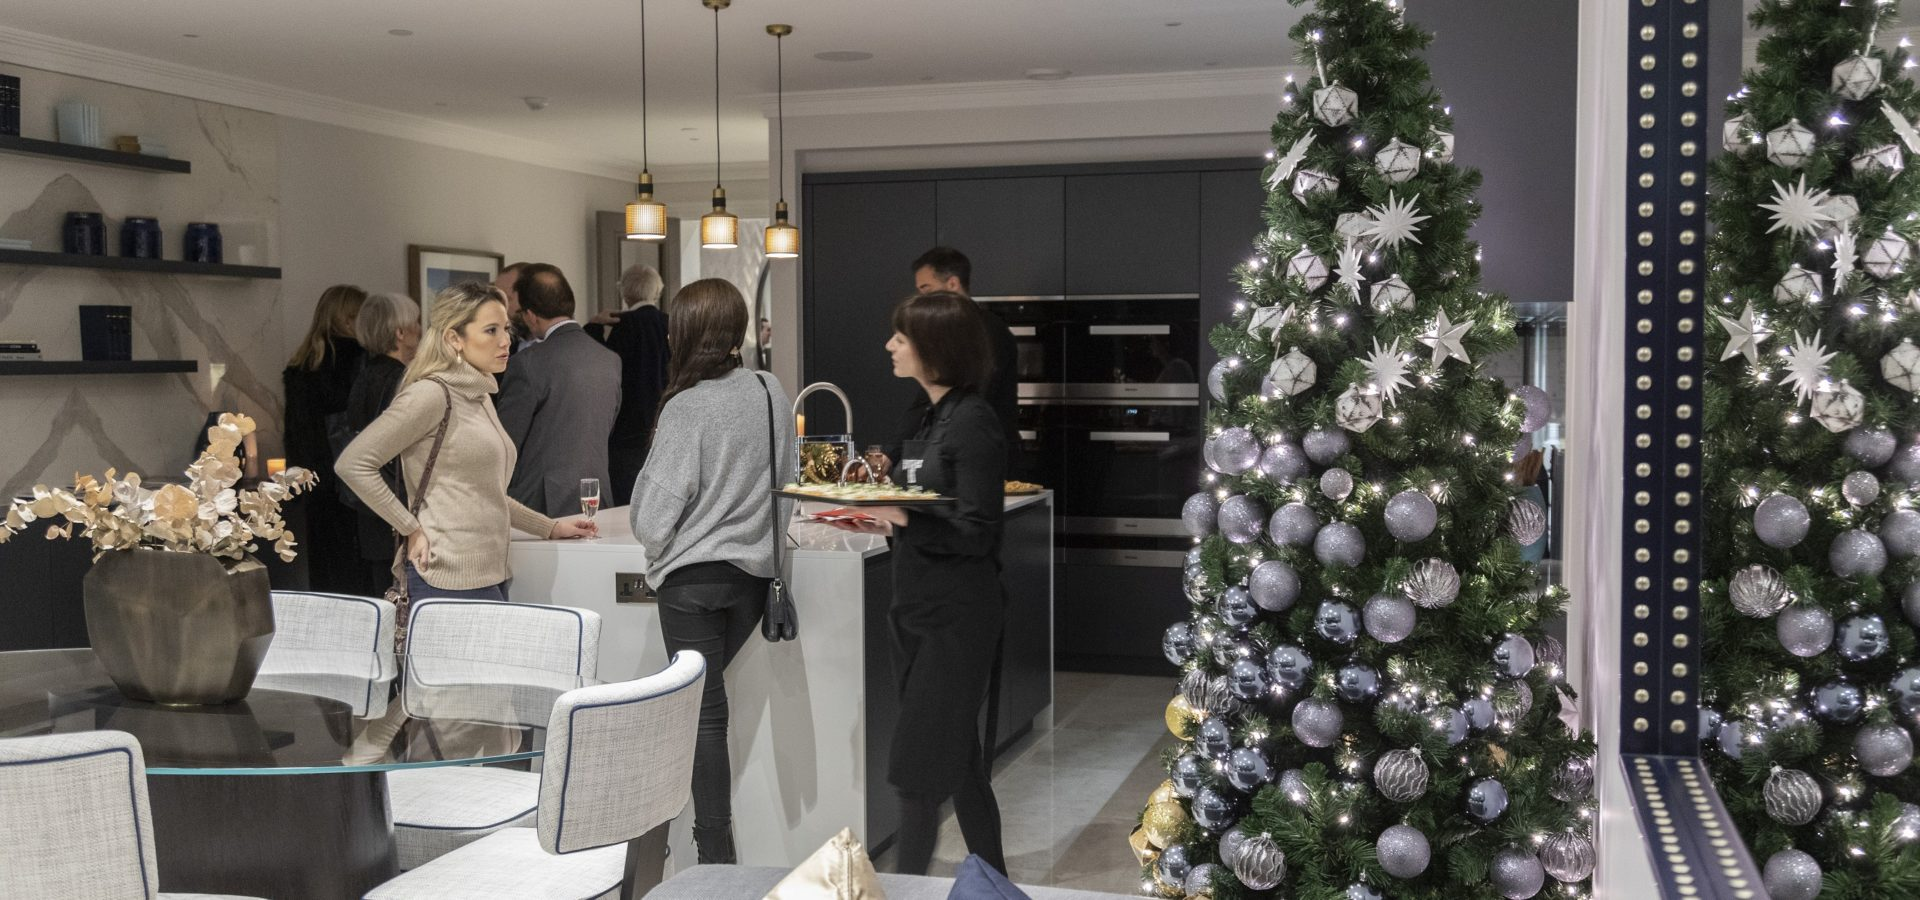 Getting Festive in Fulham with Octagon and Country & Townhouse